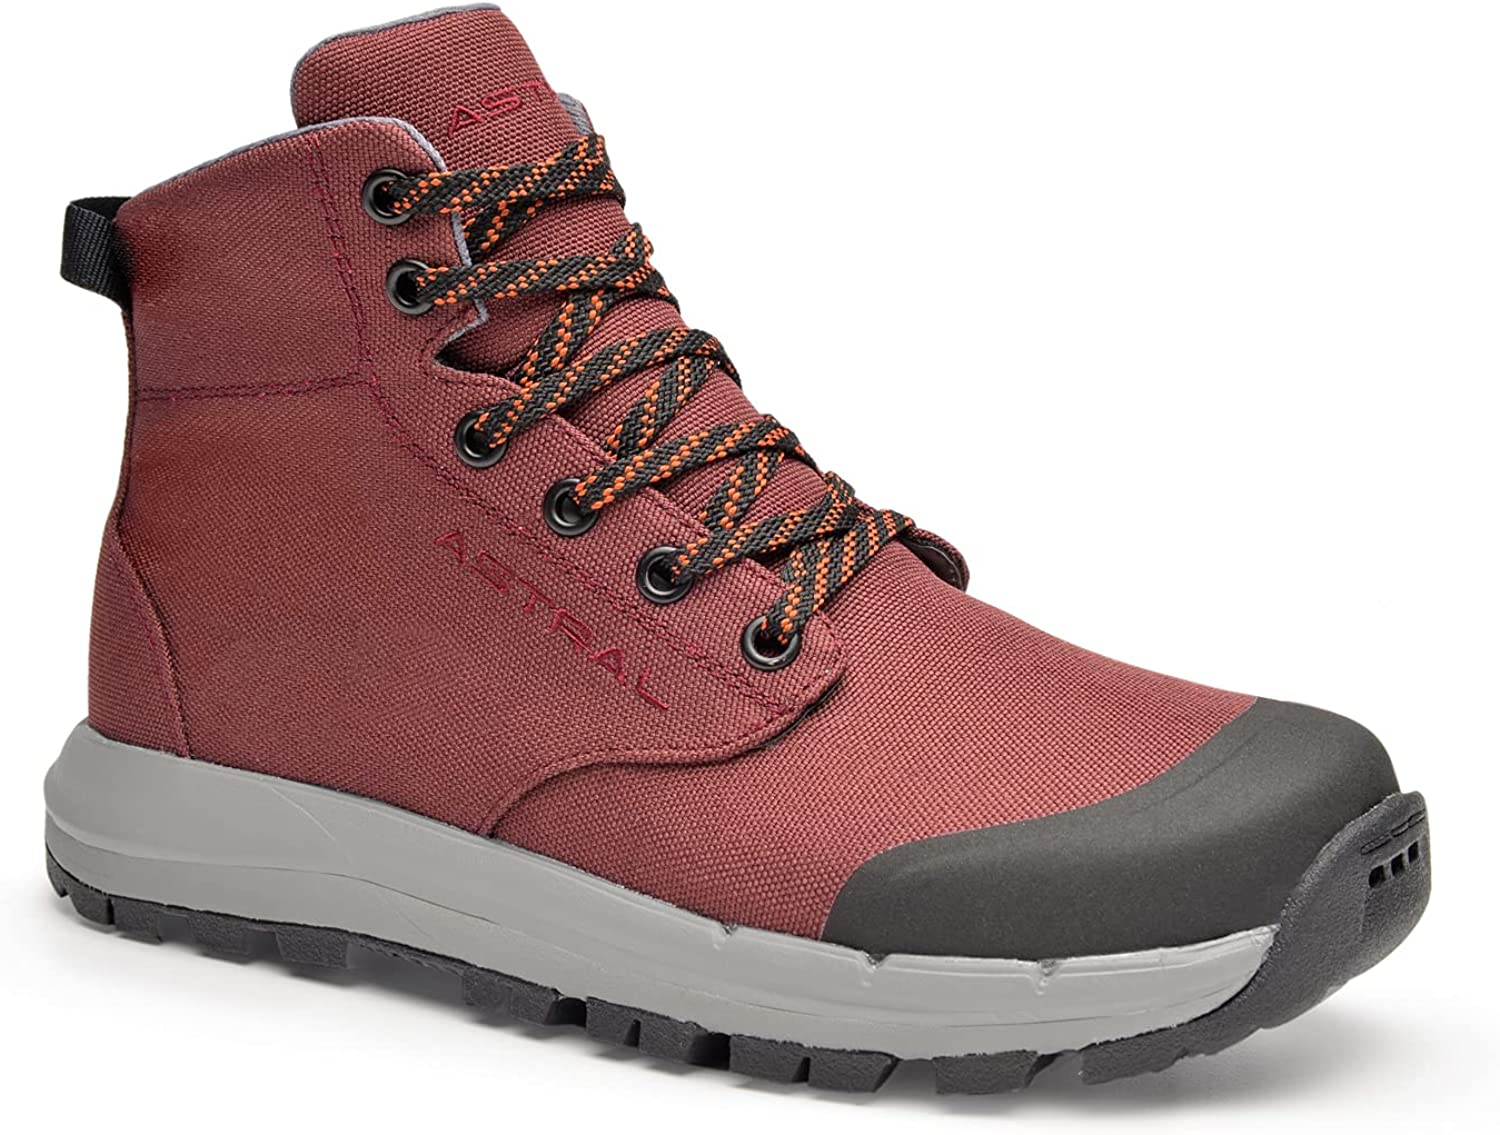 High Our shop most popular quality Astral Women's Boots Hiking